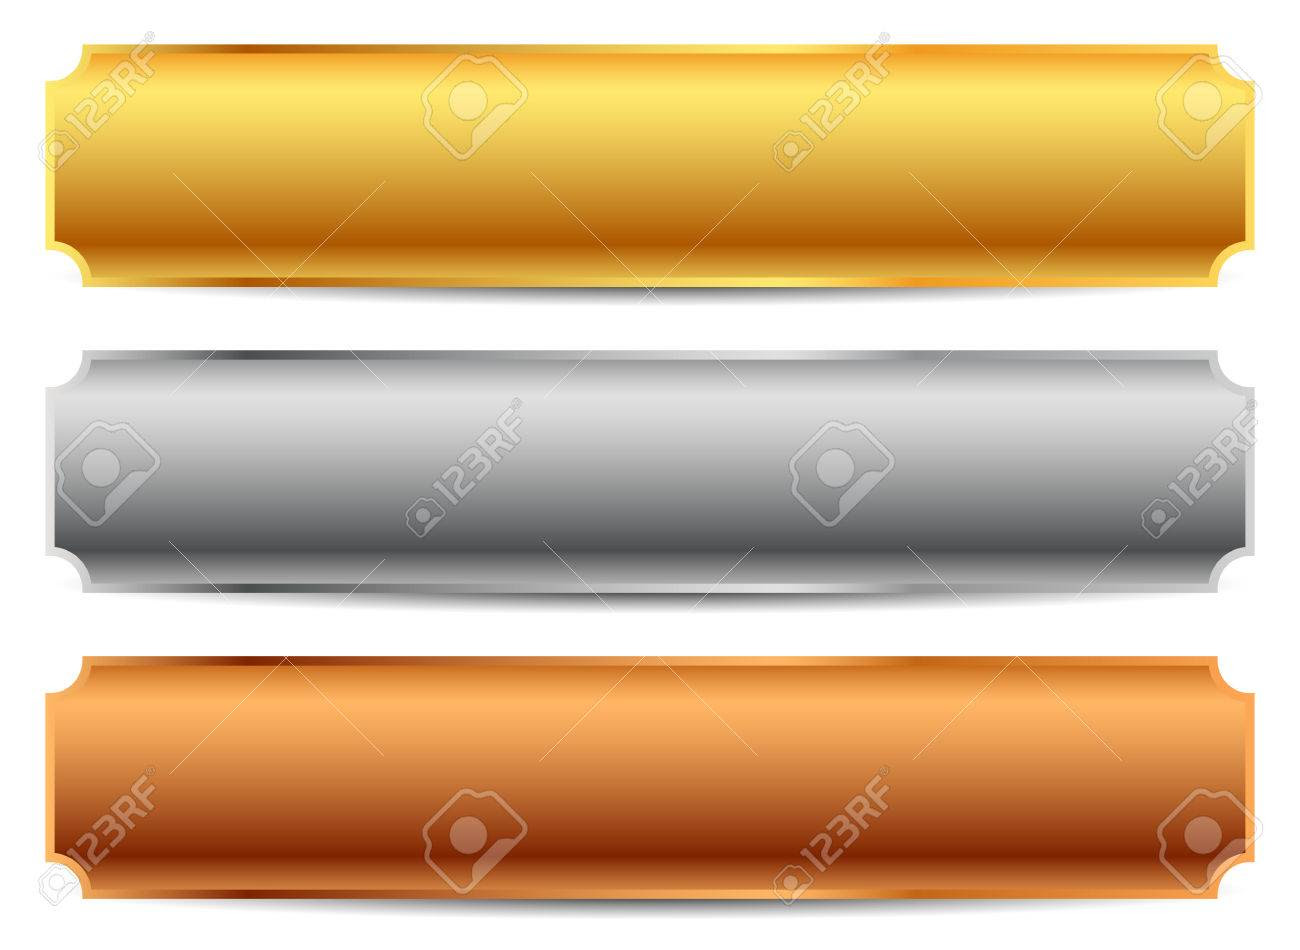 Gold, Silver, Bronze Bars, Banners. Editable Vector. Royalty Free ...